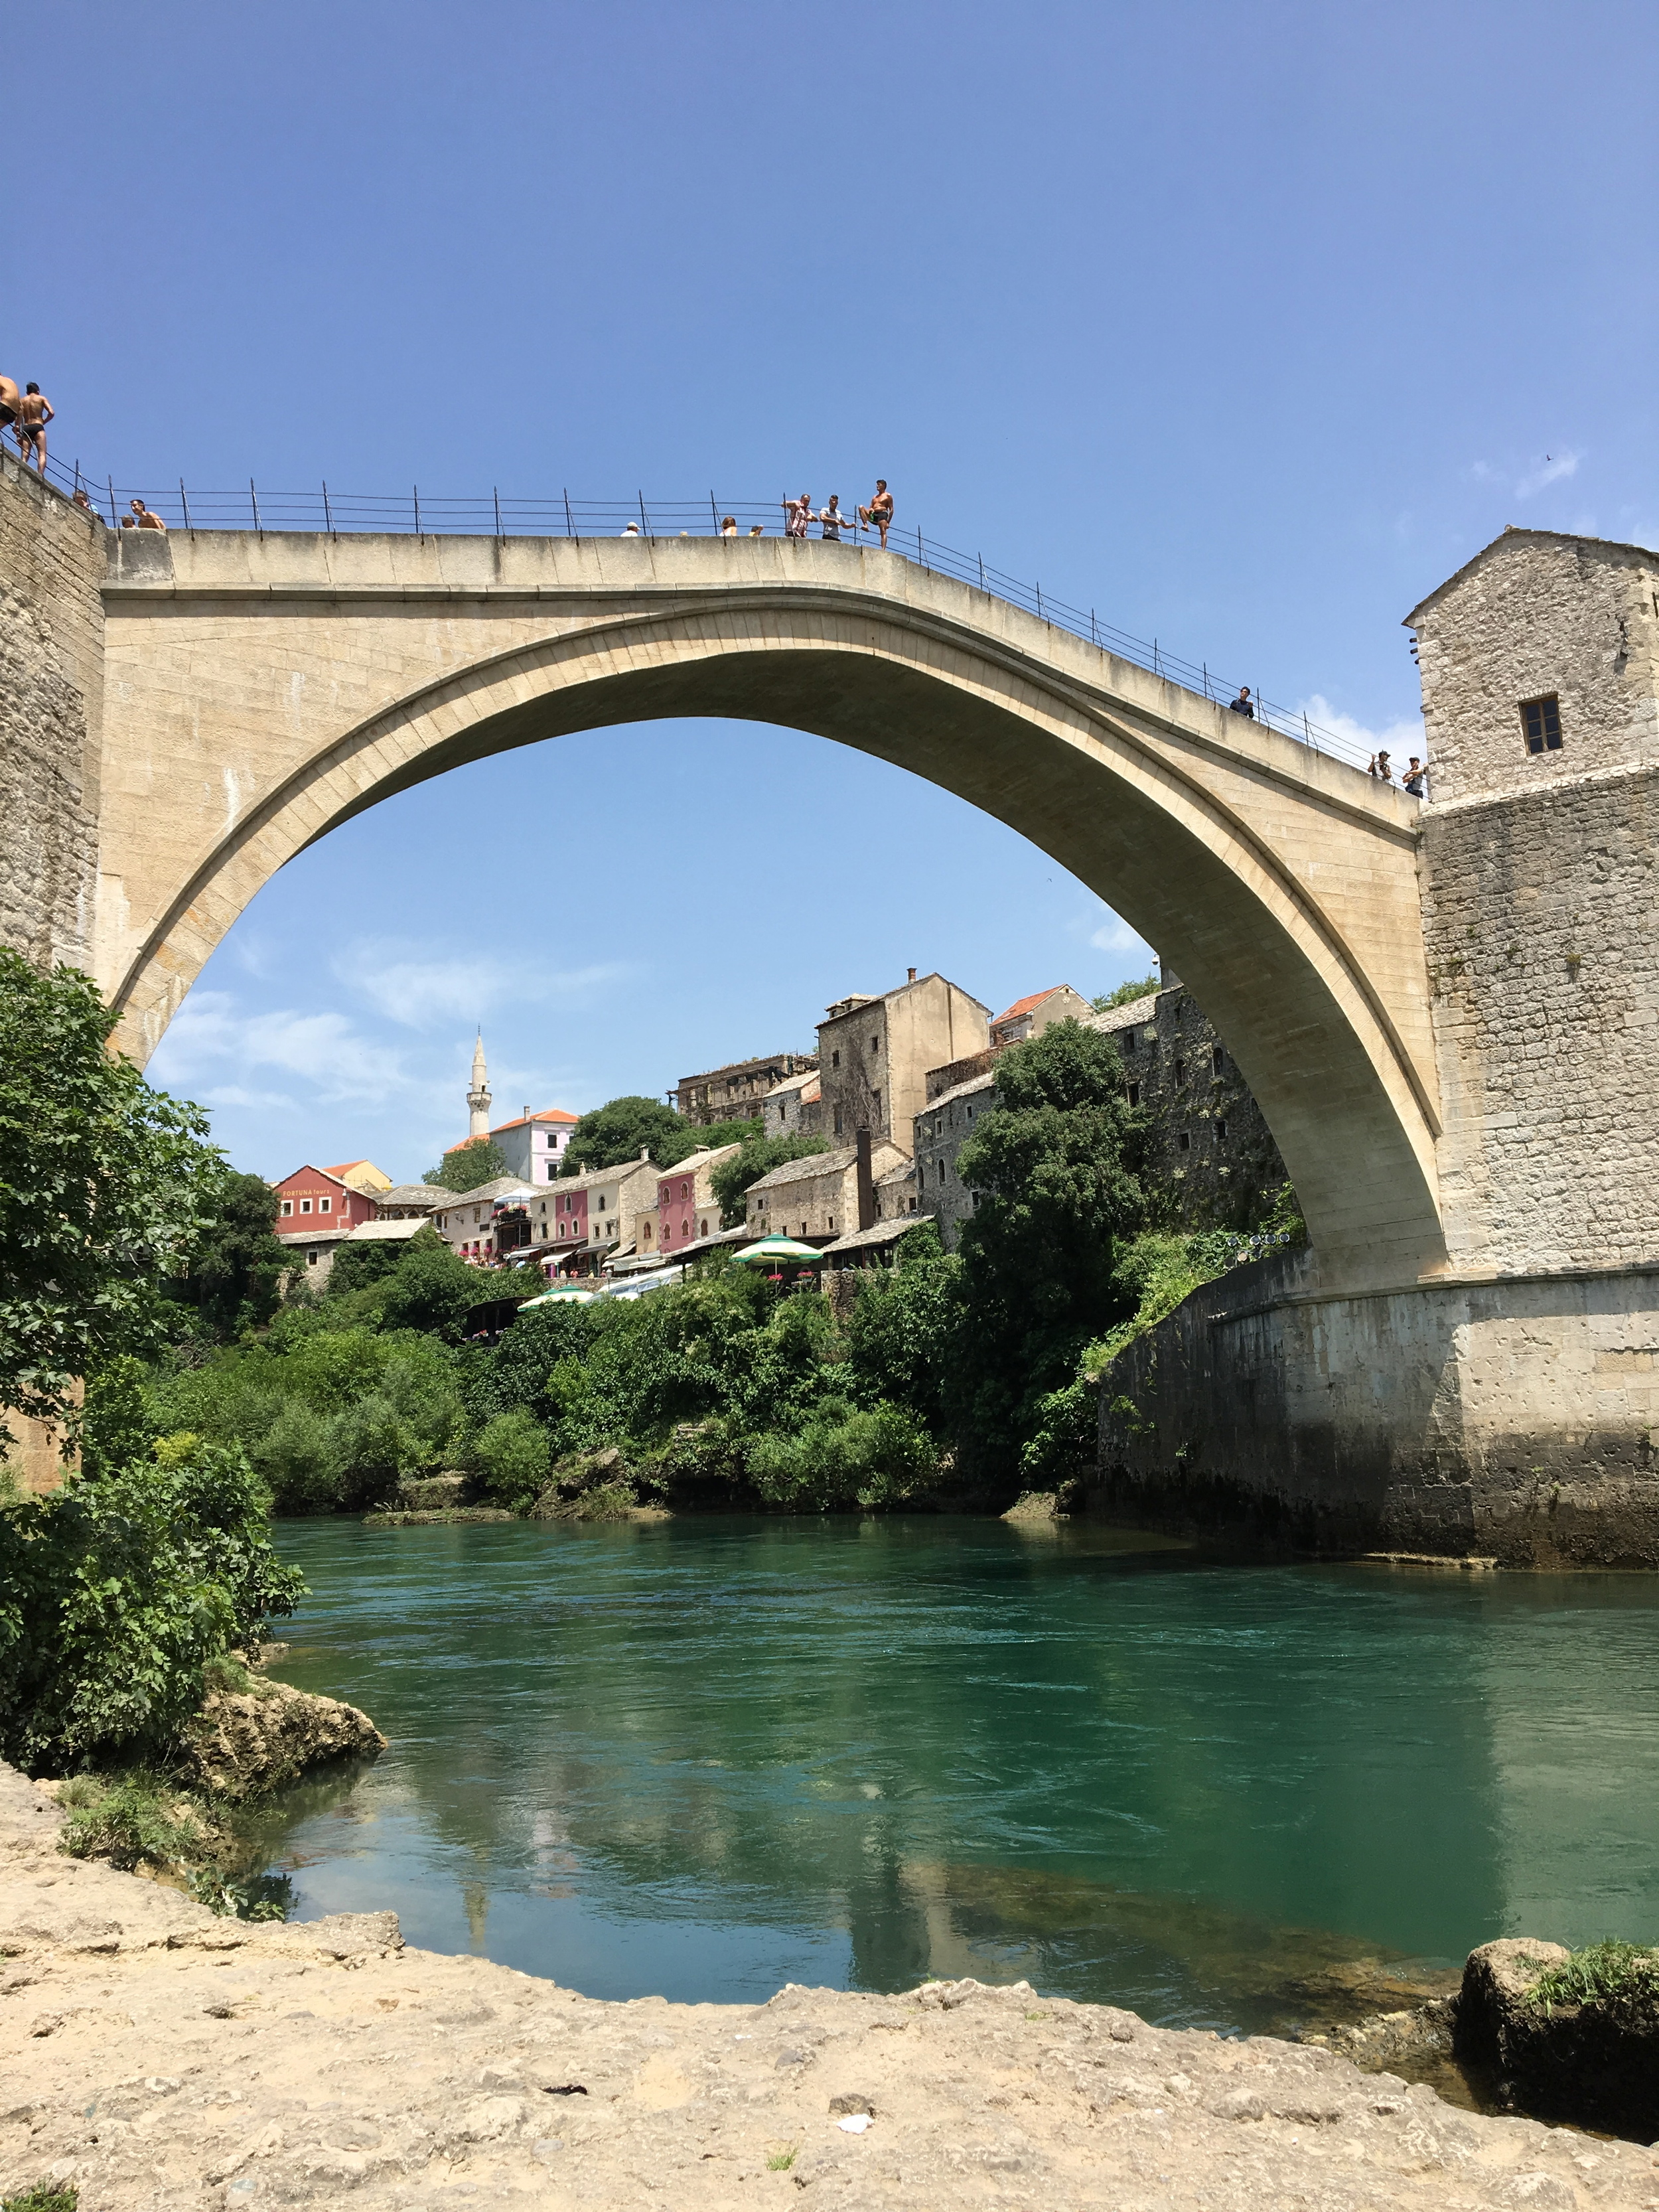 Mostar's famous bridge, rebuilt after damaged in the 1991 war by UNESCO